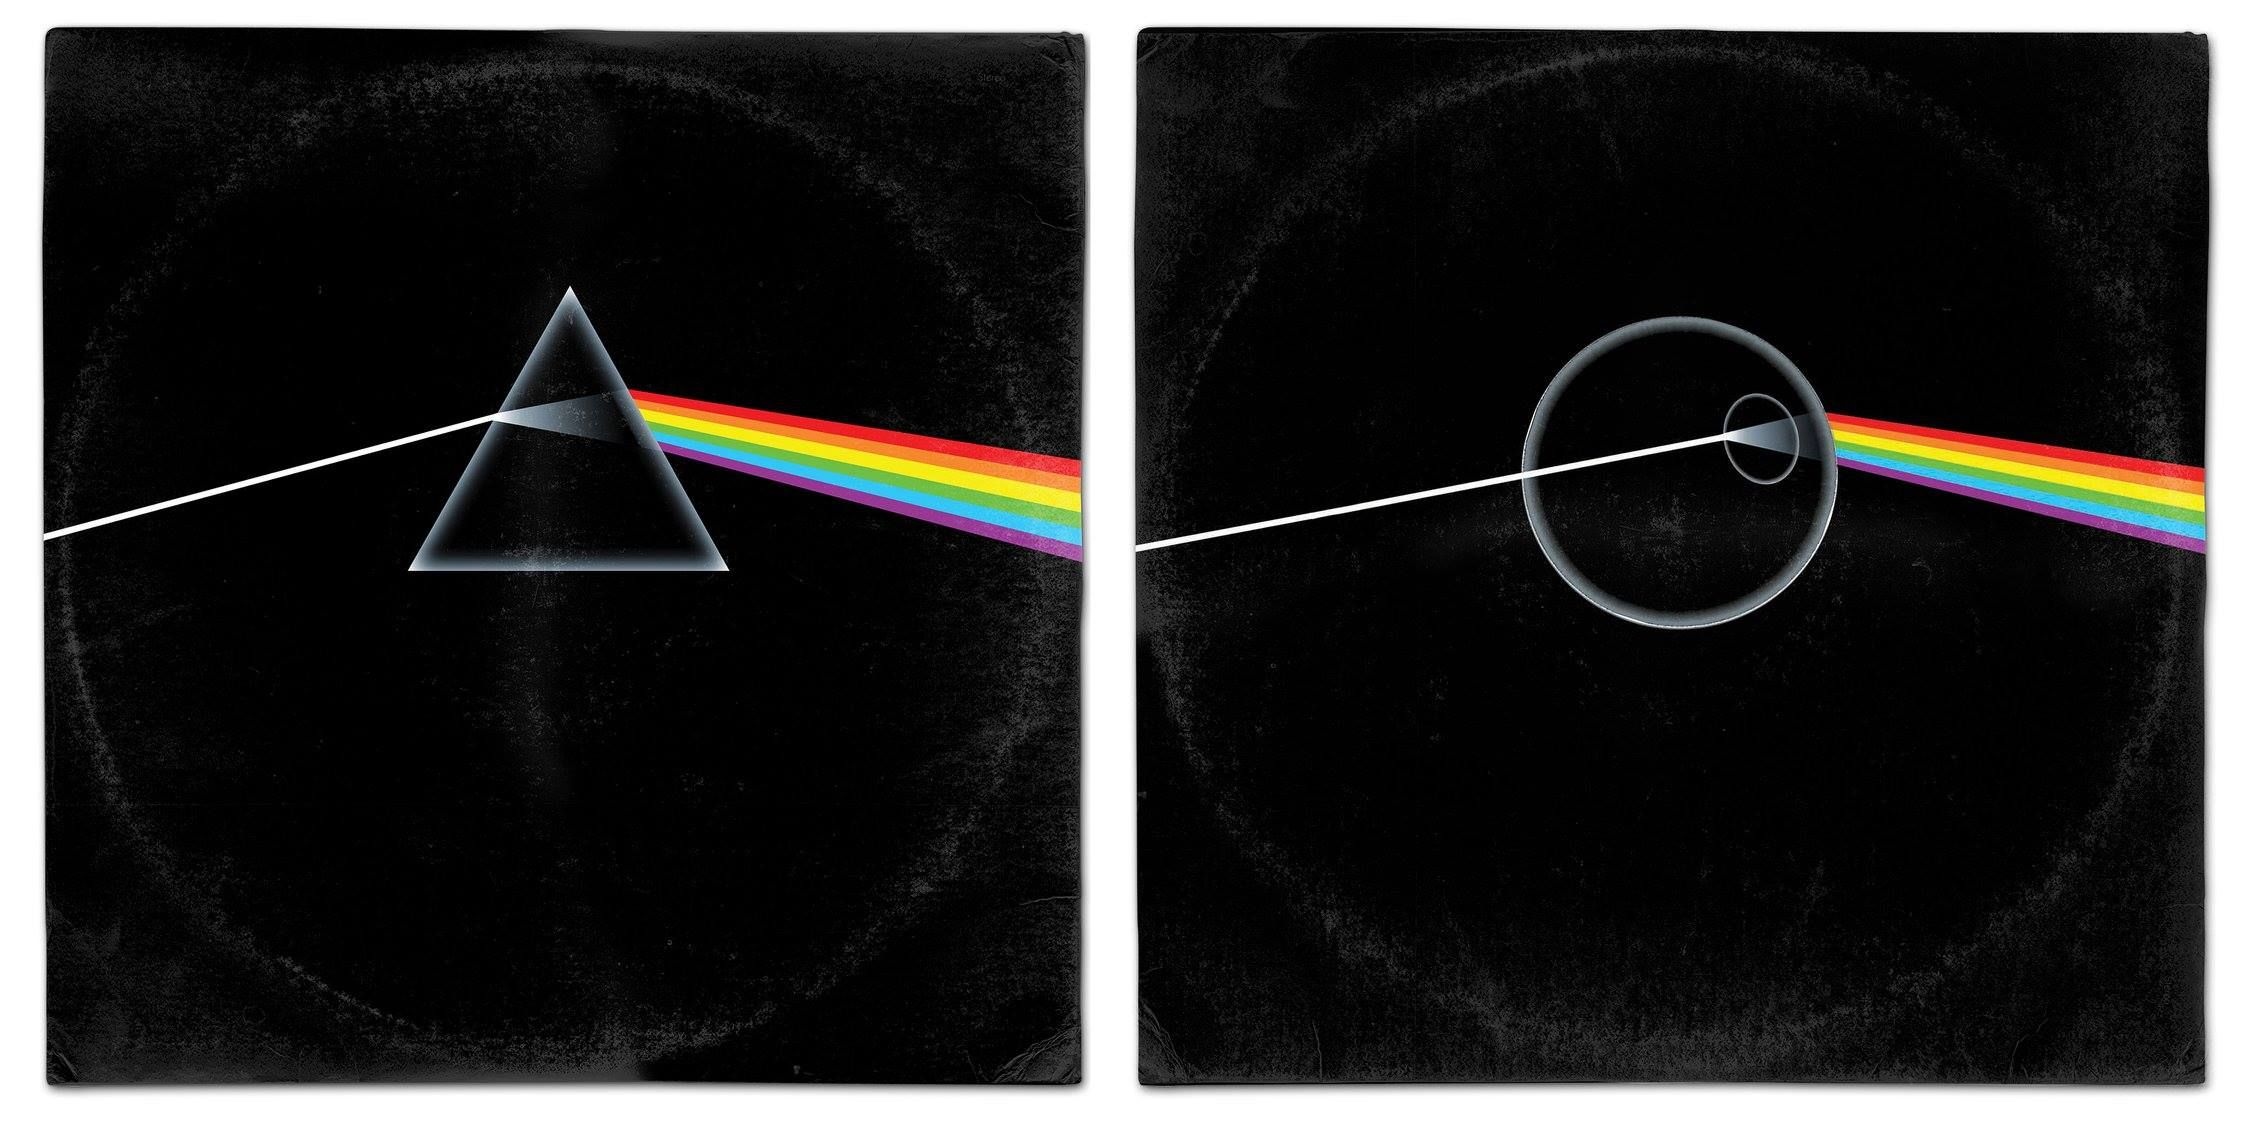 Star Wars Characters Reimagined As Famous Album Covers